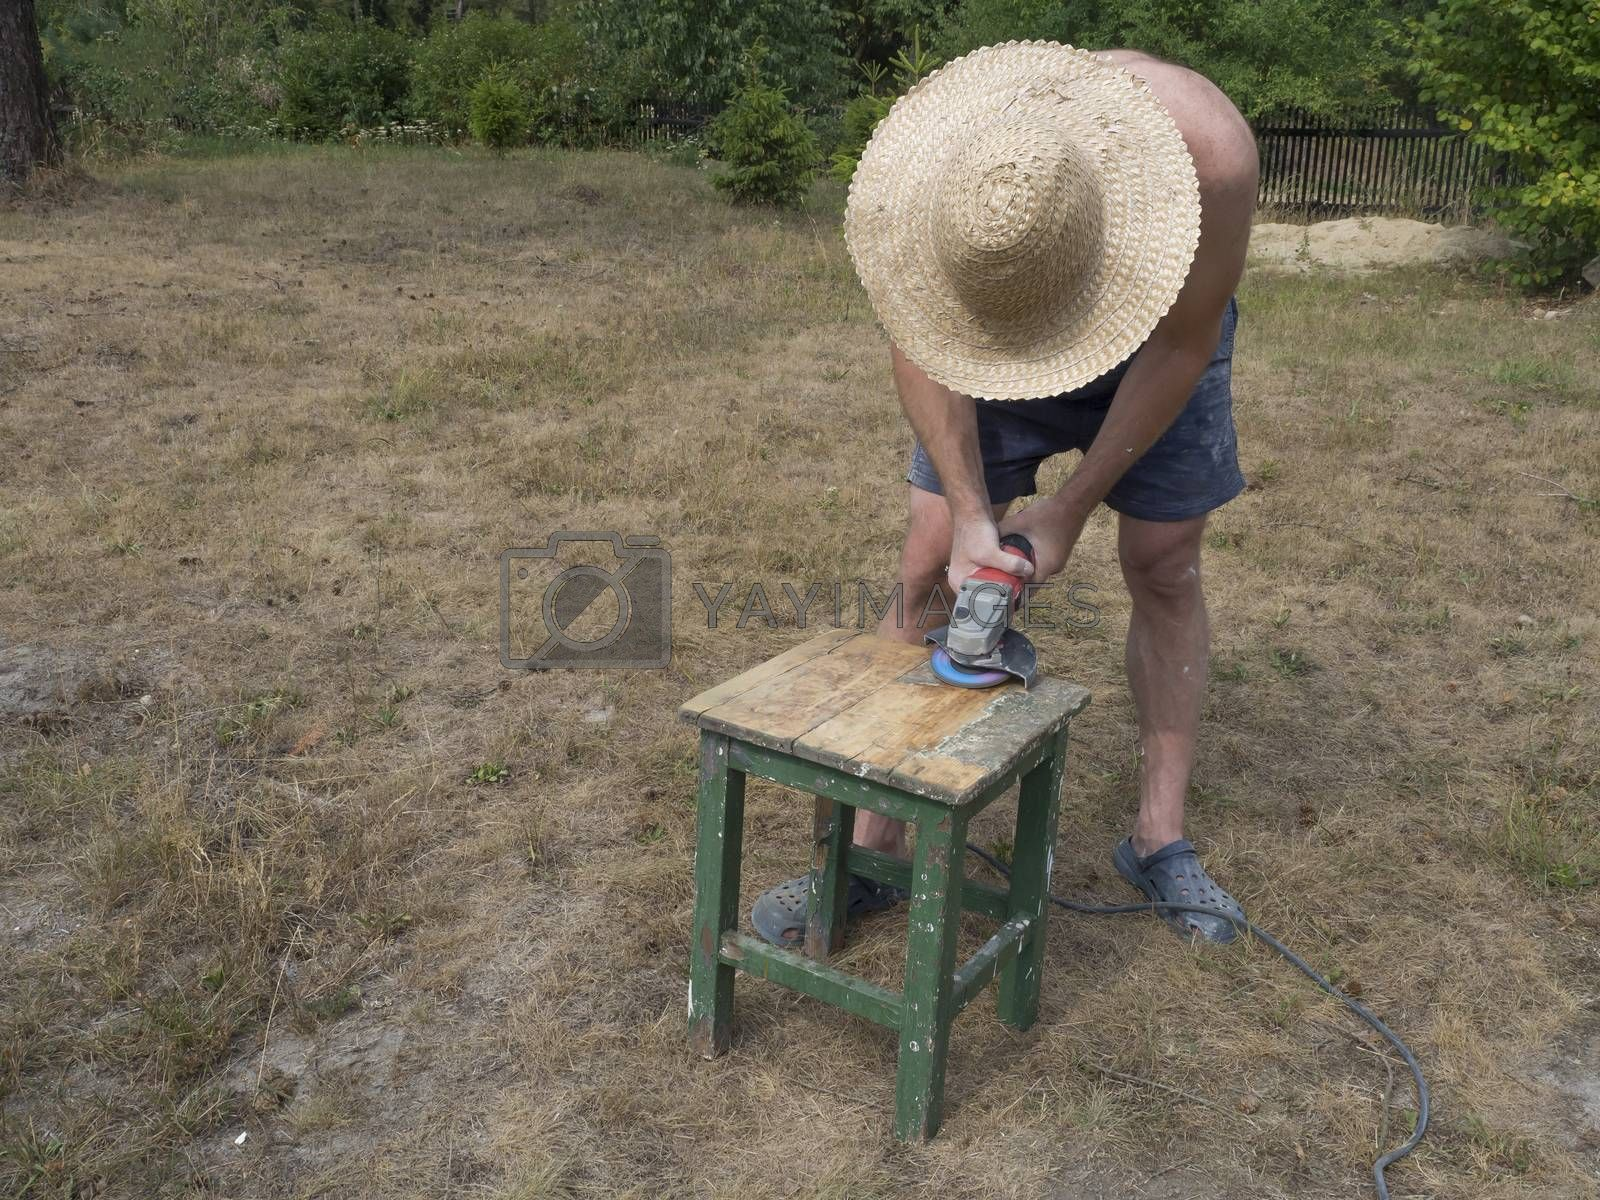 The man in straw hatworking with eletric grinder machine, tool for grinding and polishing the surface, renovating and polishing old wooden small table, outside on his garden